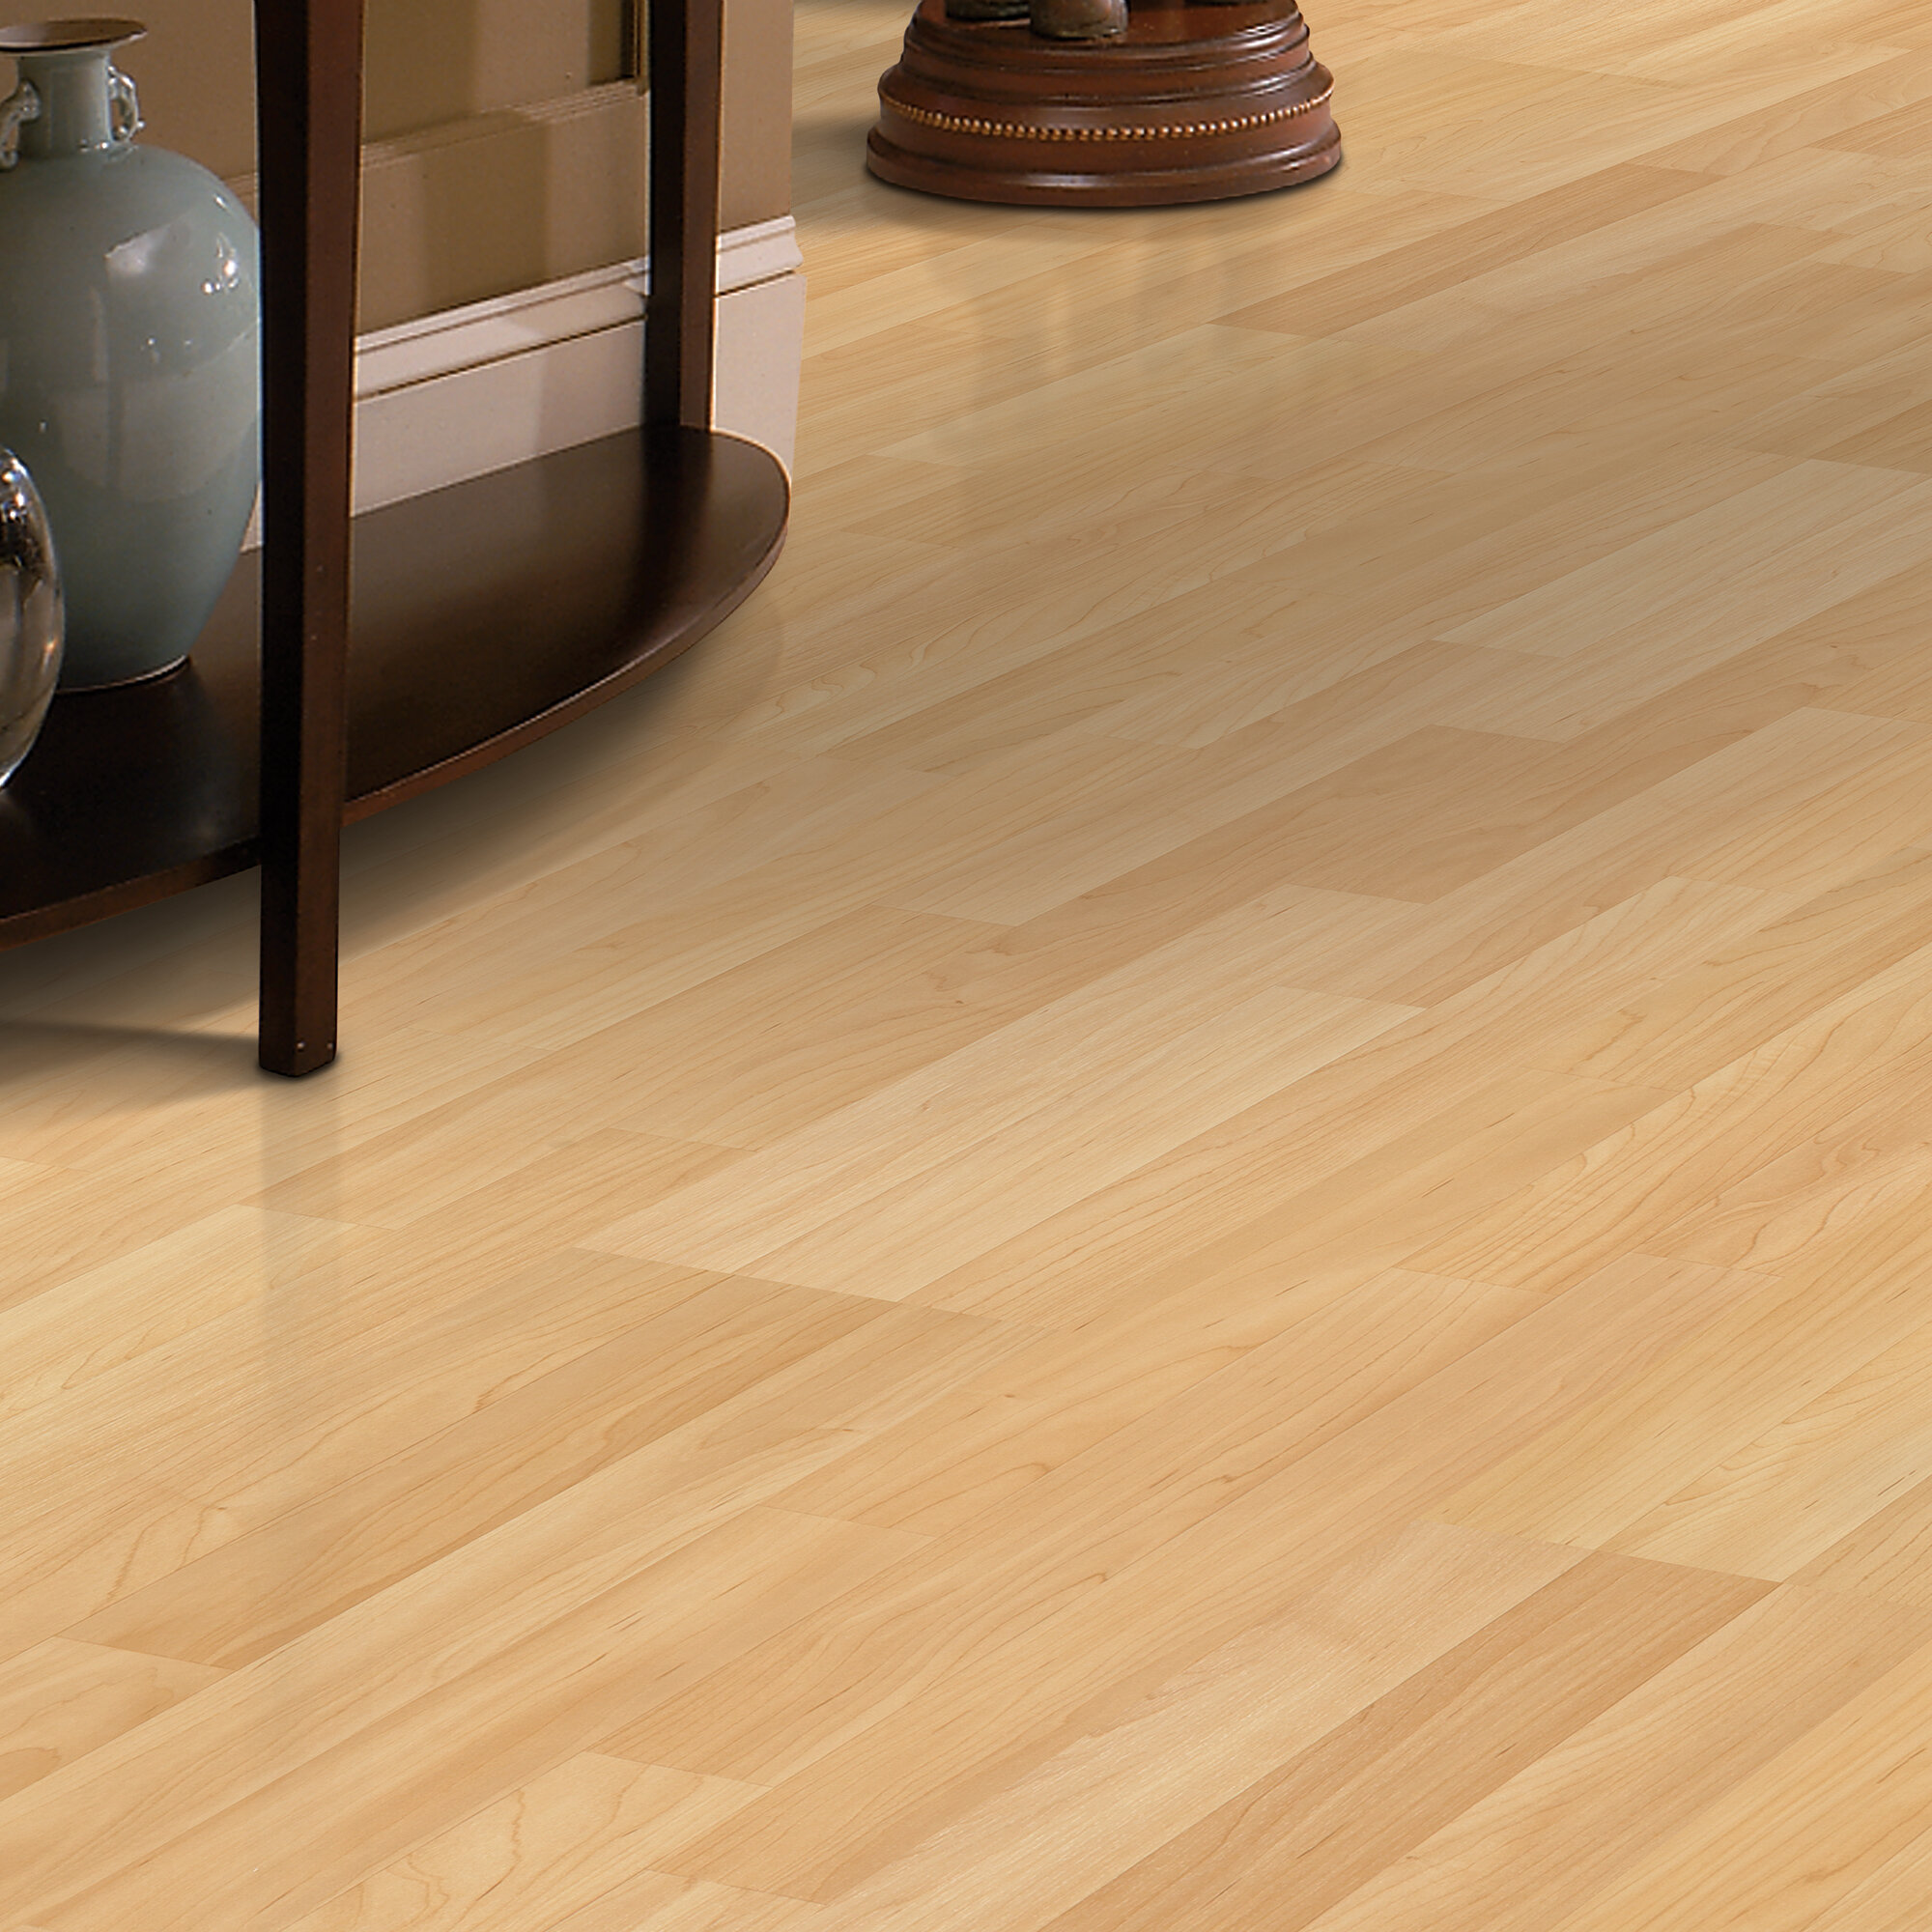 X 47 8mm Maple Laminate Flooring